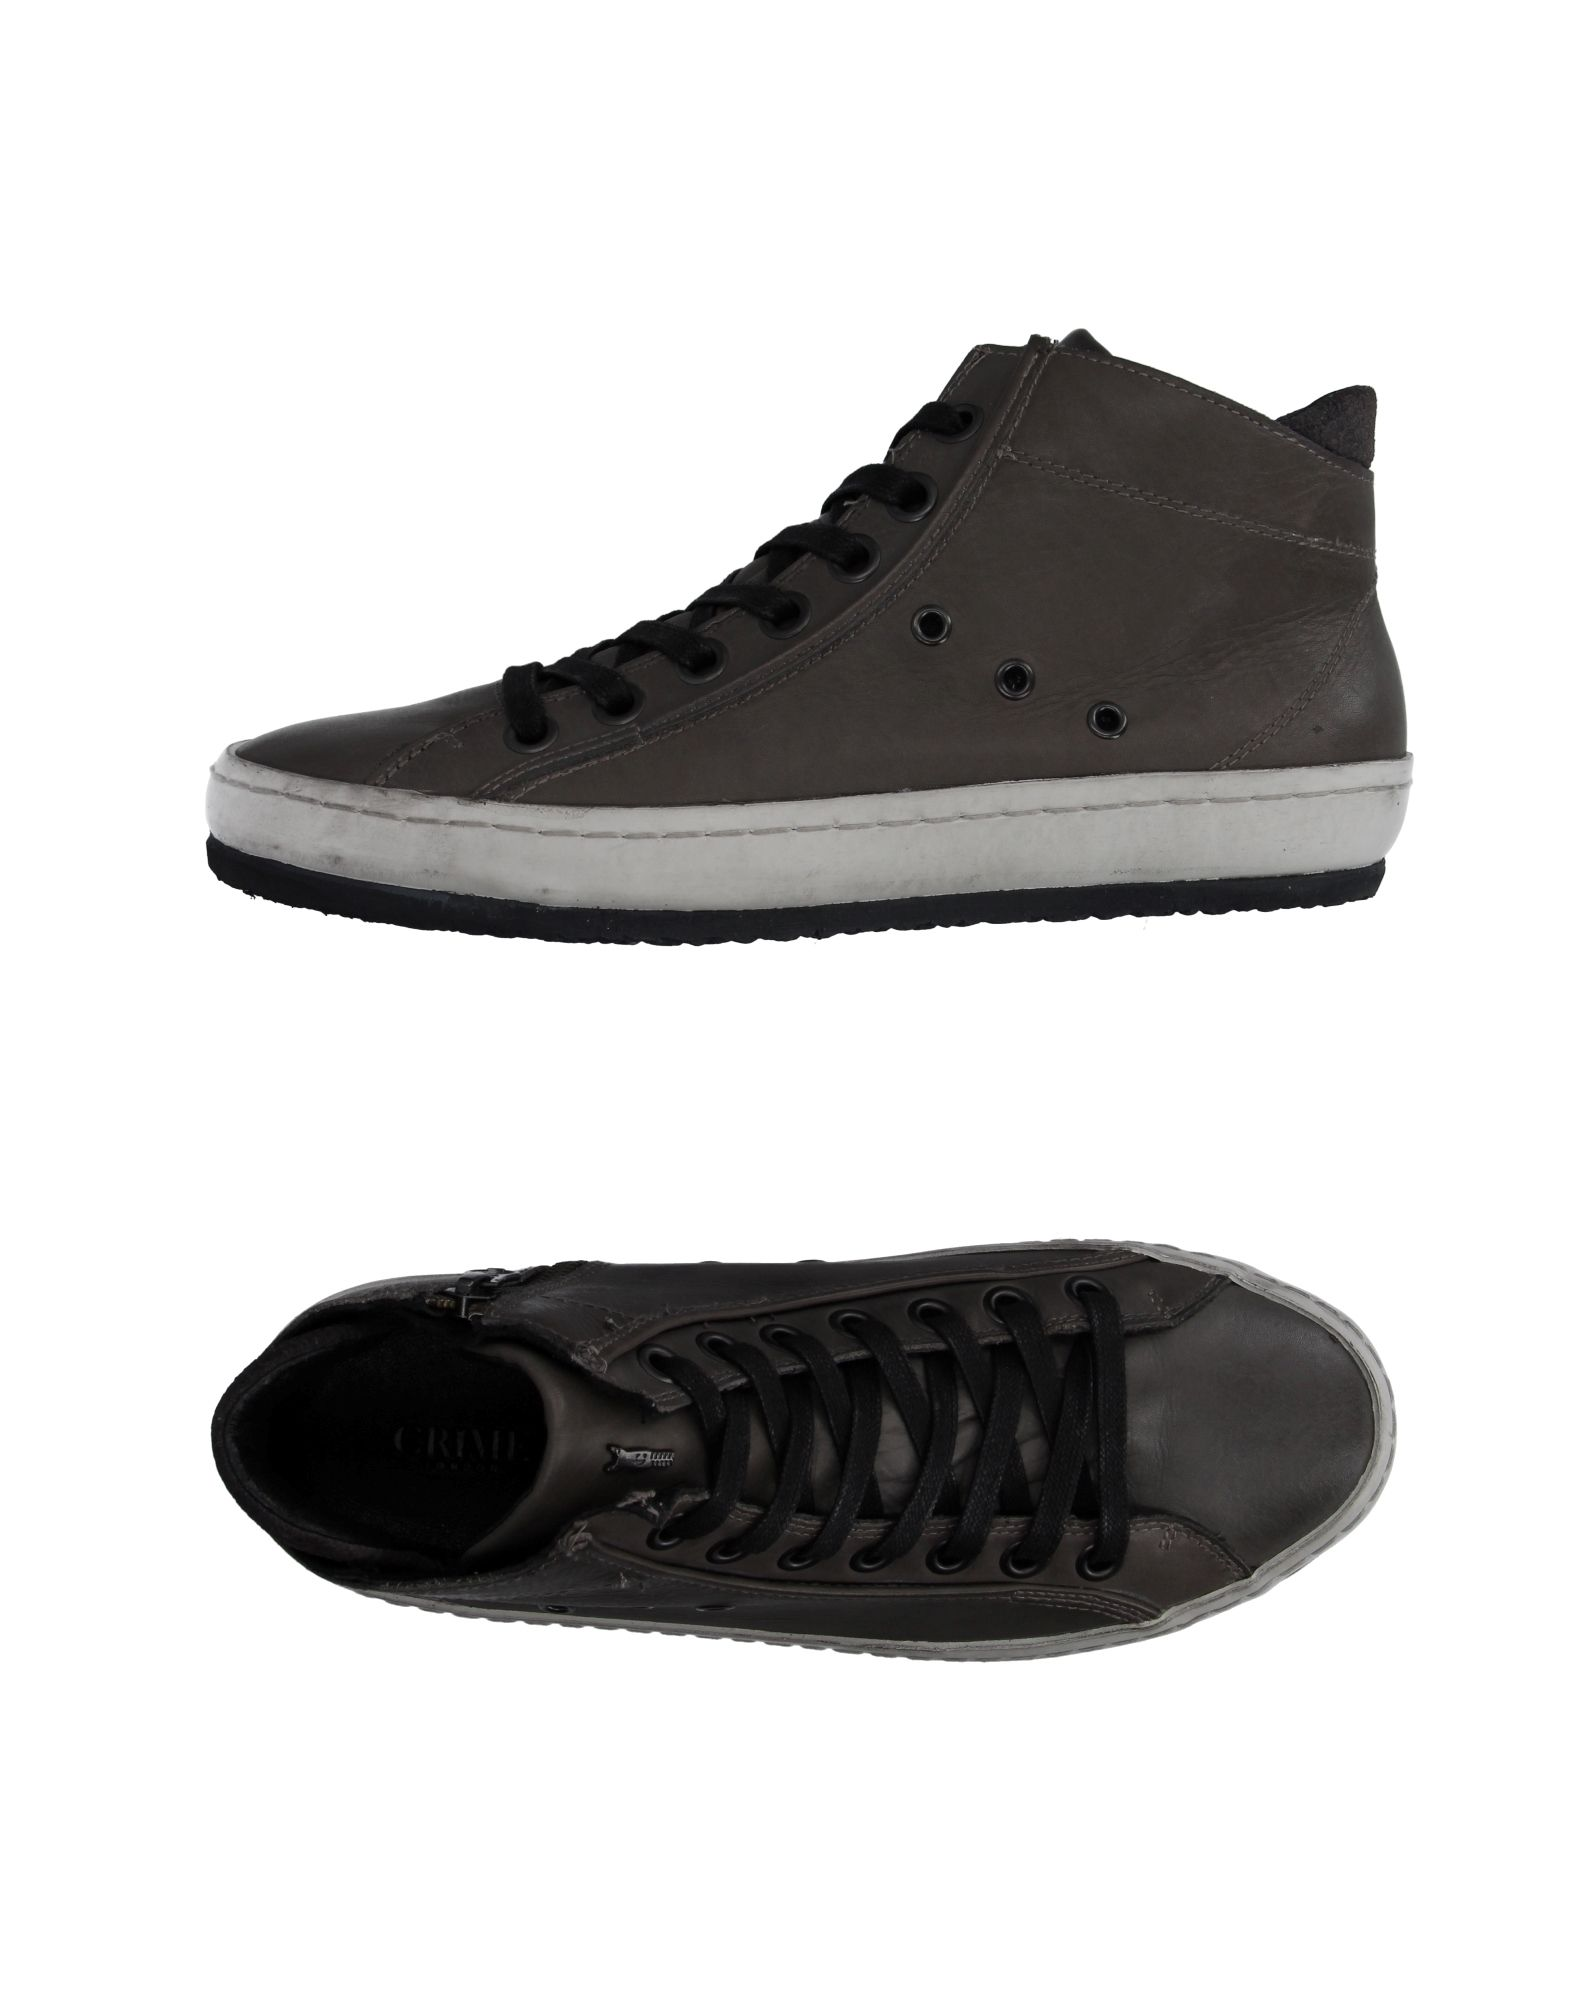 Rabatt echte Schuhe Crime London Herren Sneakers Herren London  11055402GJ b2c5c7